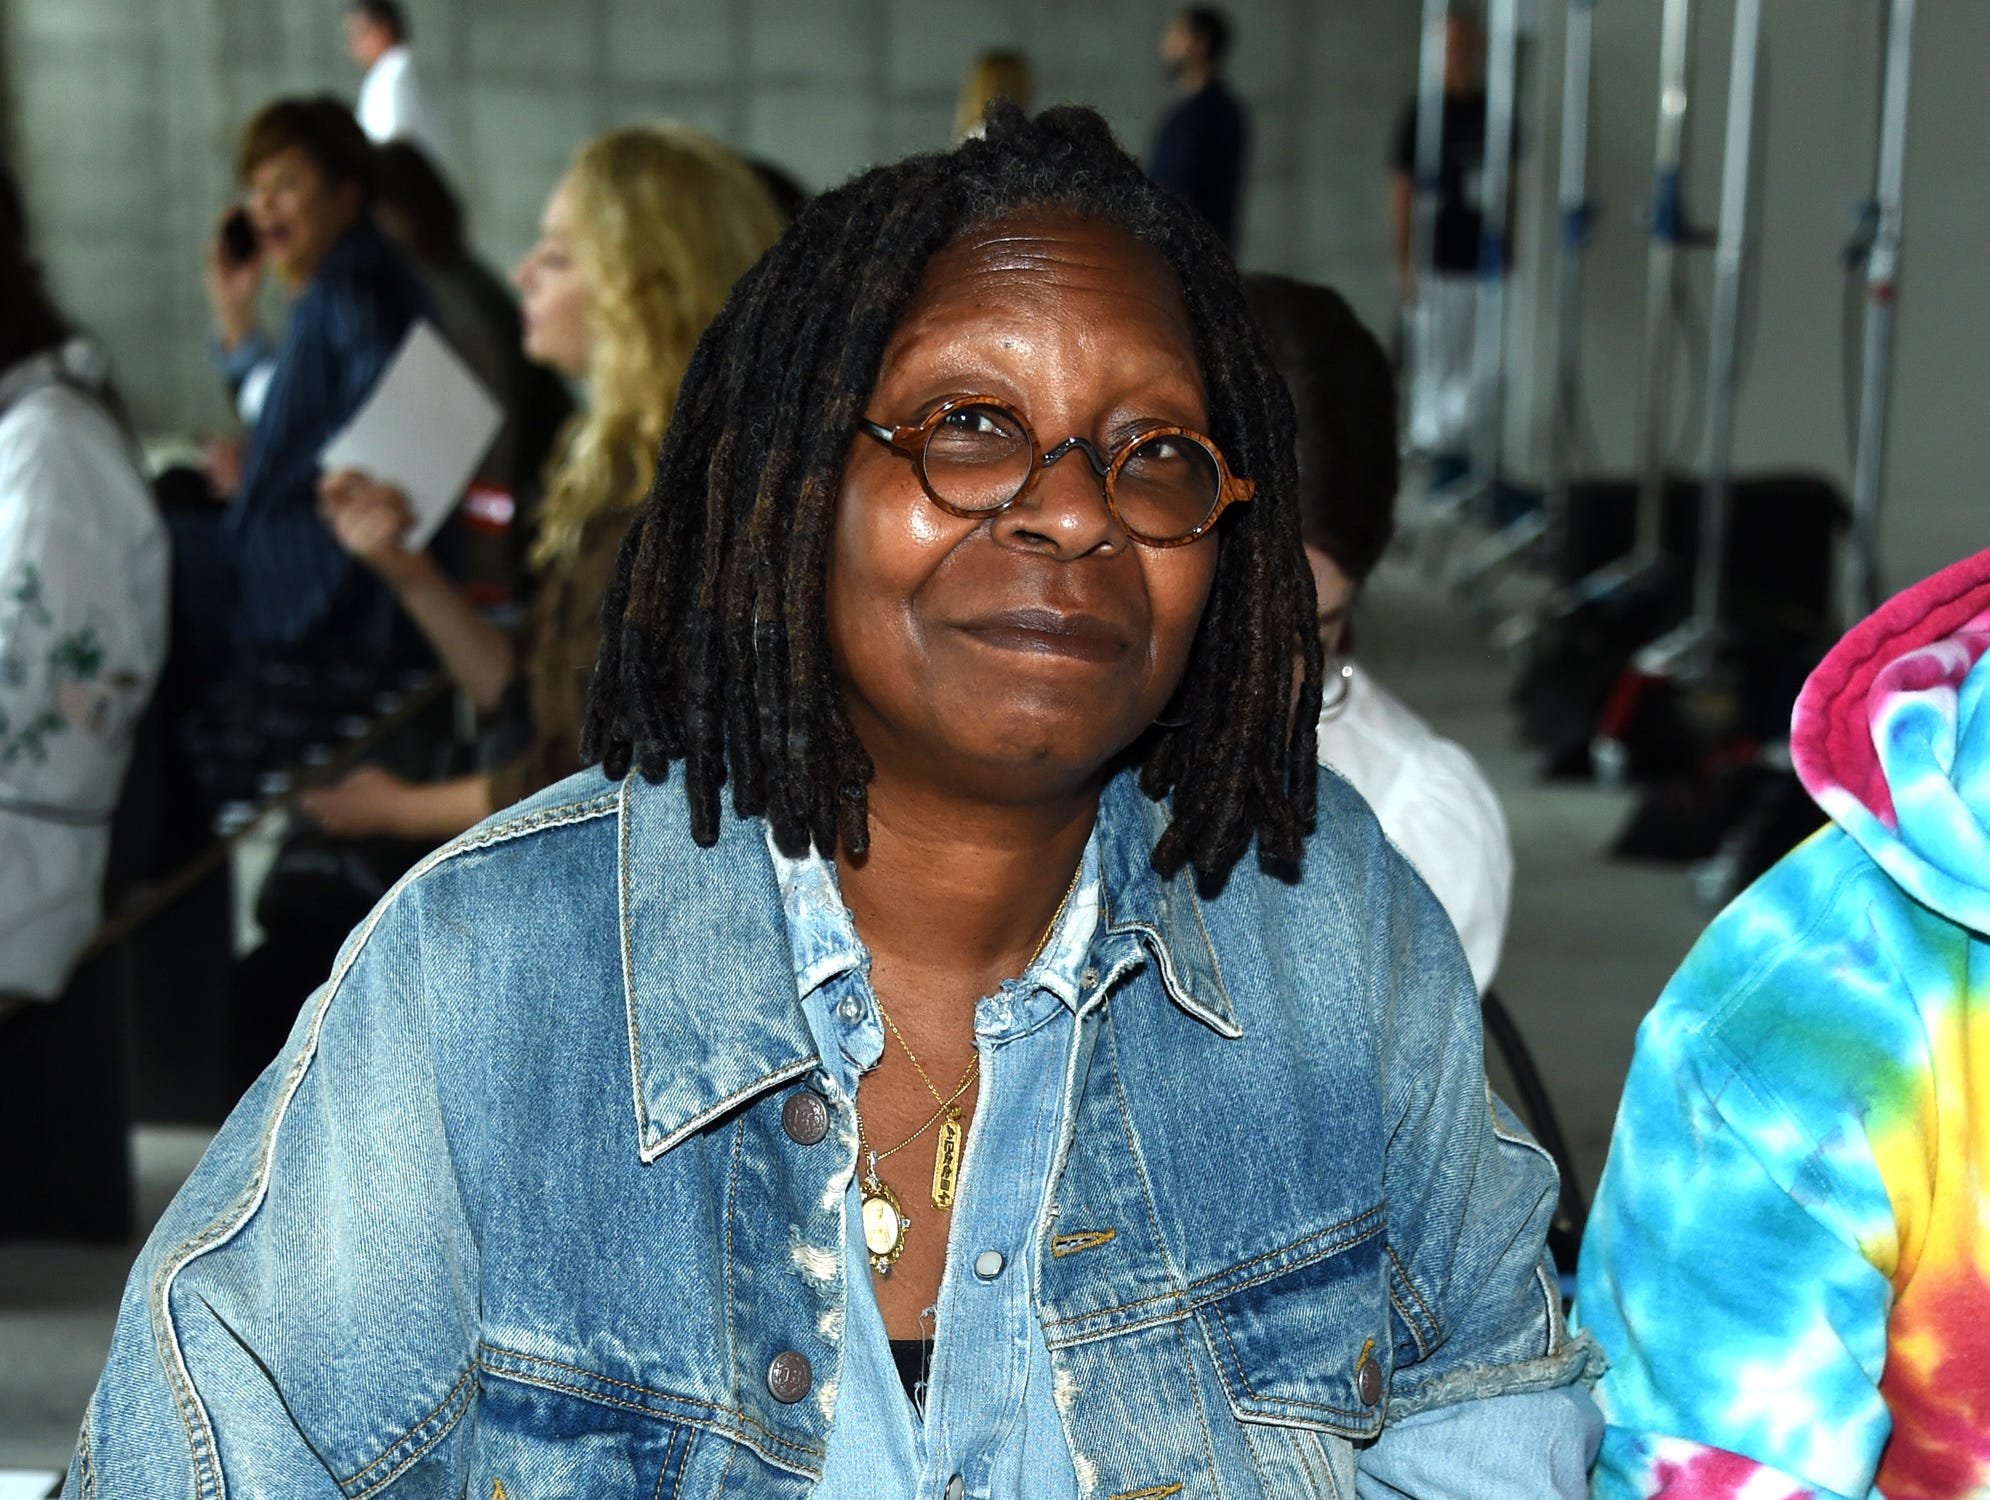 NEW YORK, NY - SEPTEMBER 08:  Whoopi Goldberg attends the R13 Front Row during New York Fashion Week on September 8, 2018 in New York City.  (Photo by Dimitrios Kambouris/Getty Images) ORG XMIT: 775216439 ORIG FILE ID: 1029380304